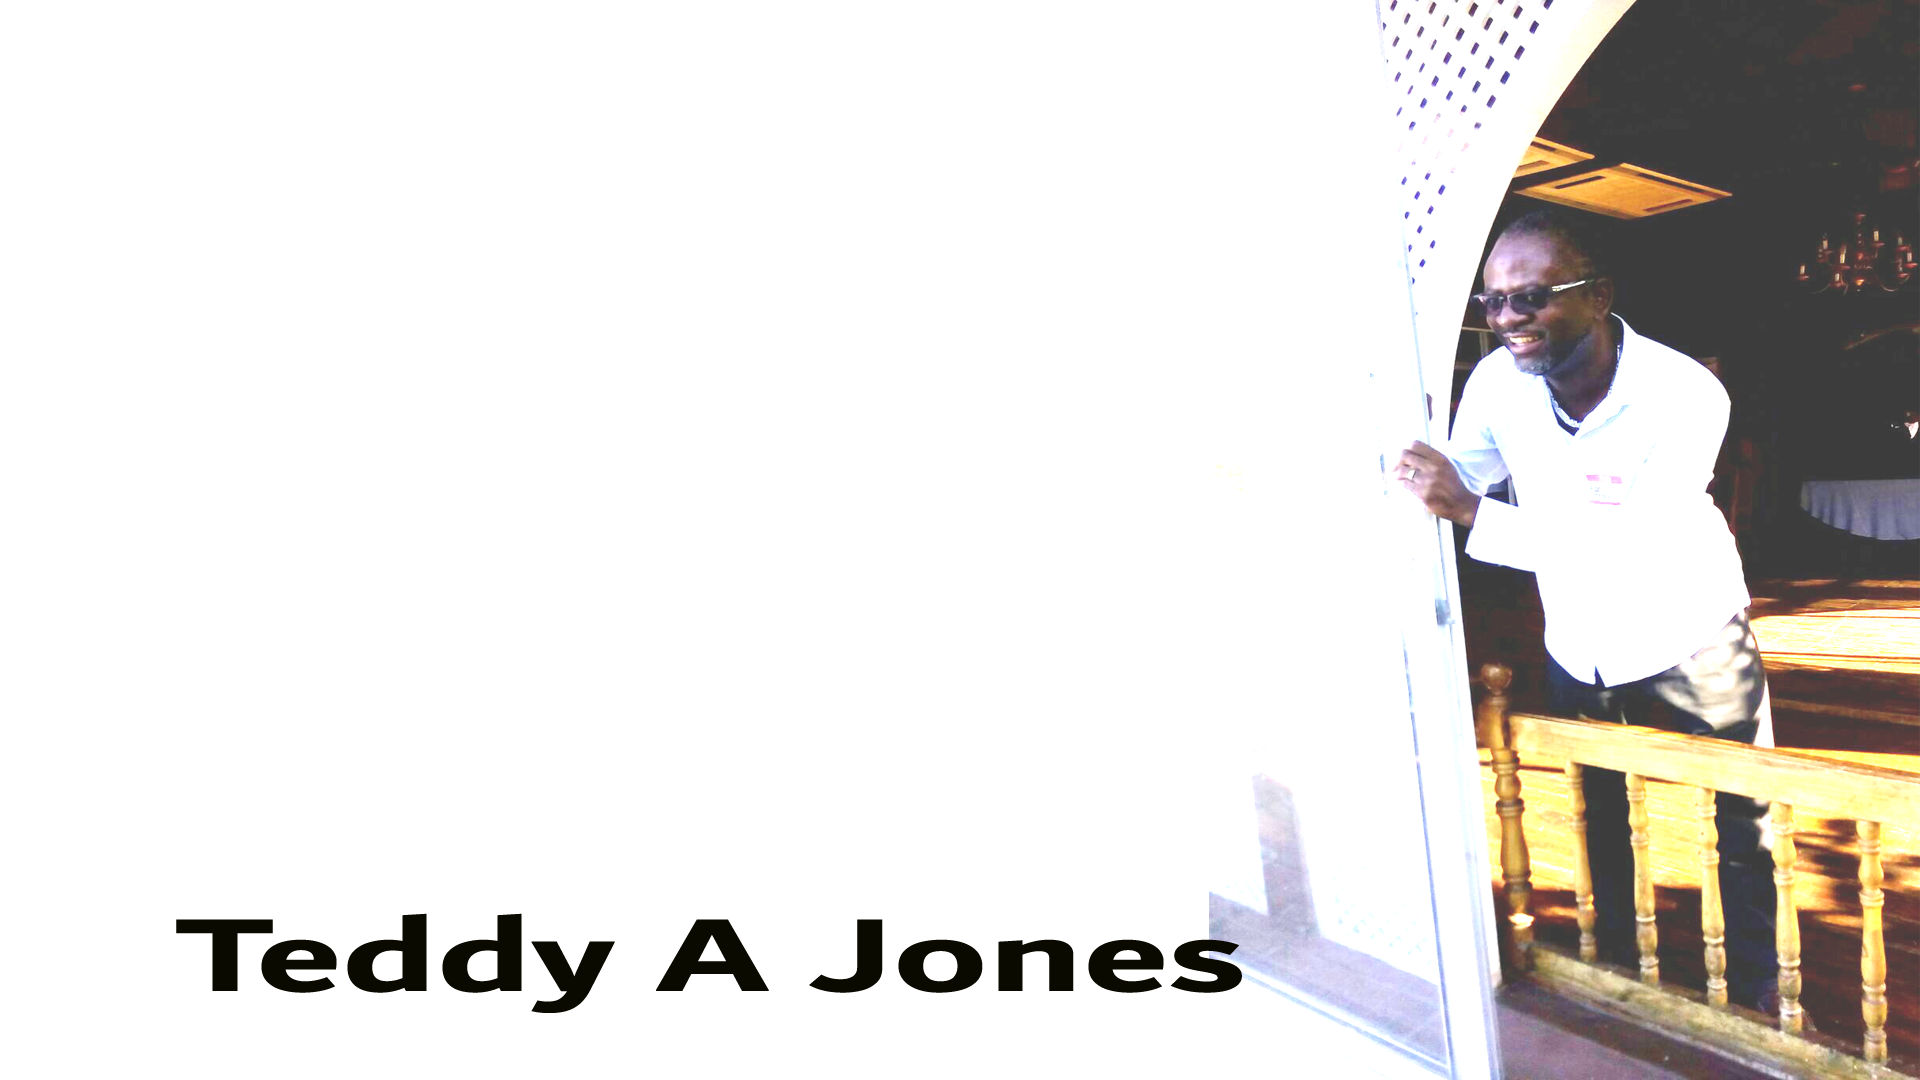 Teddy A Jones